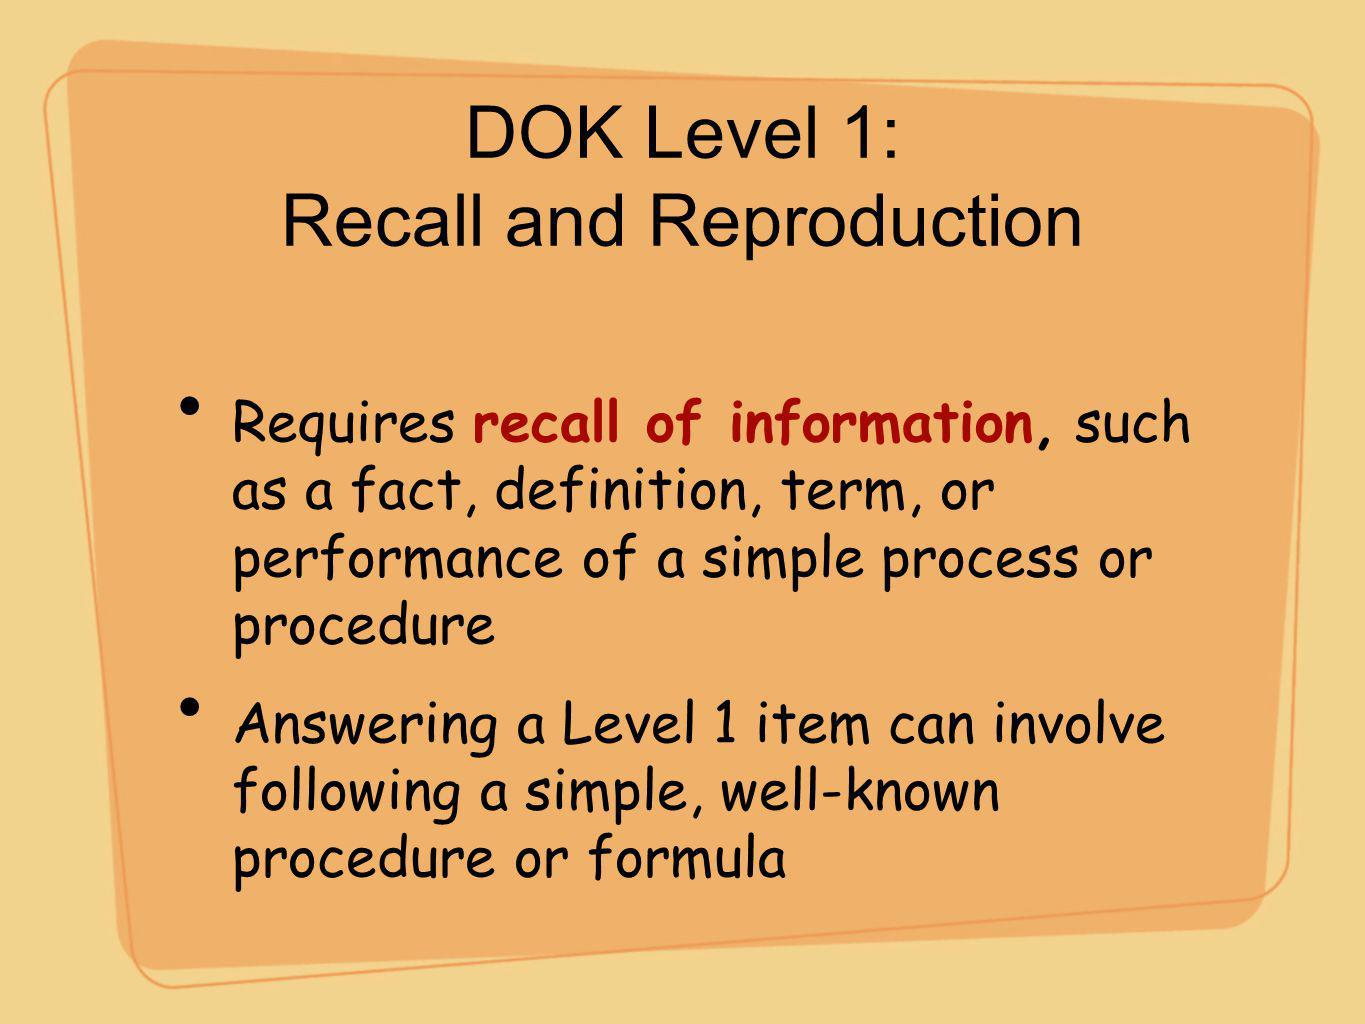 DOK Level 1: Recall and Reproduction